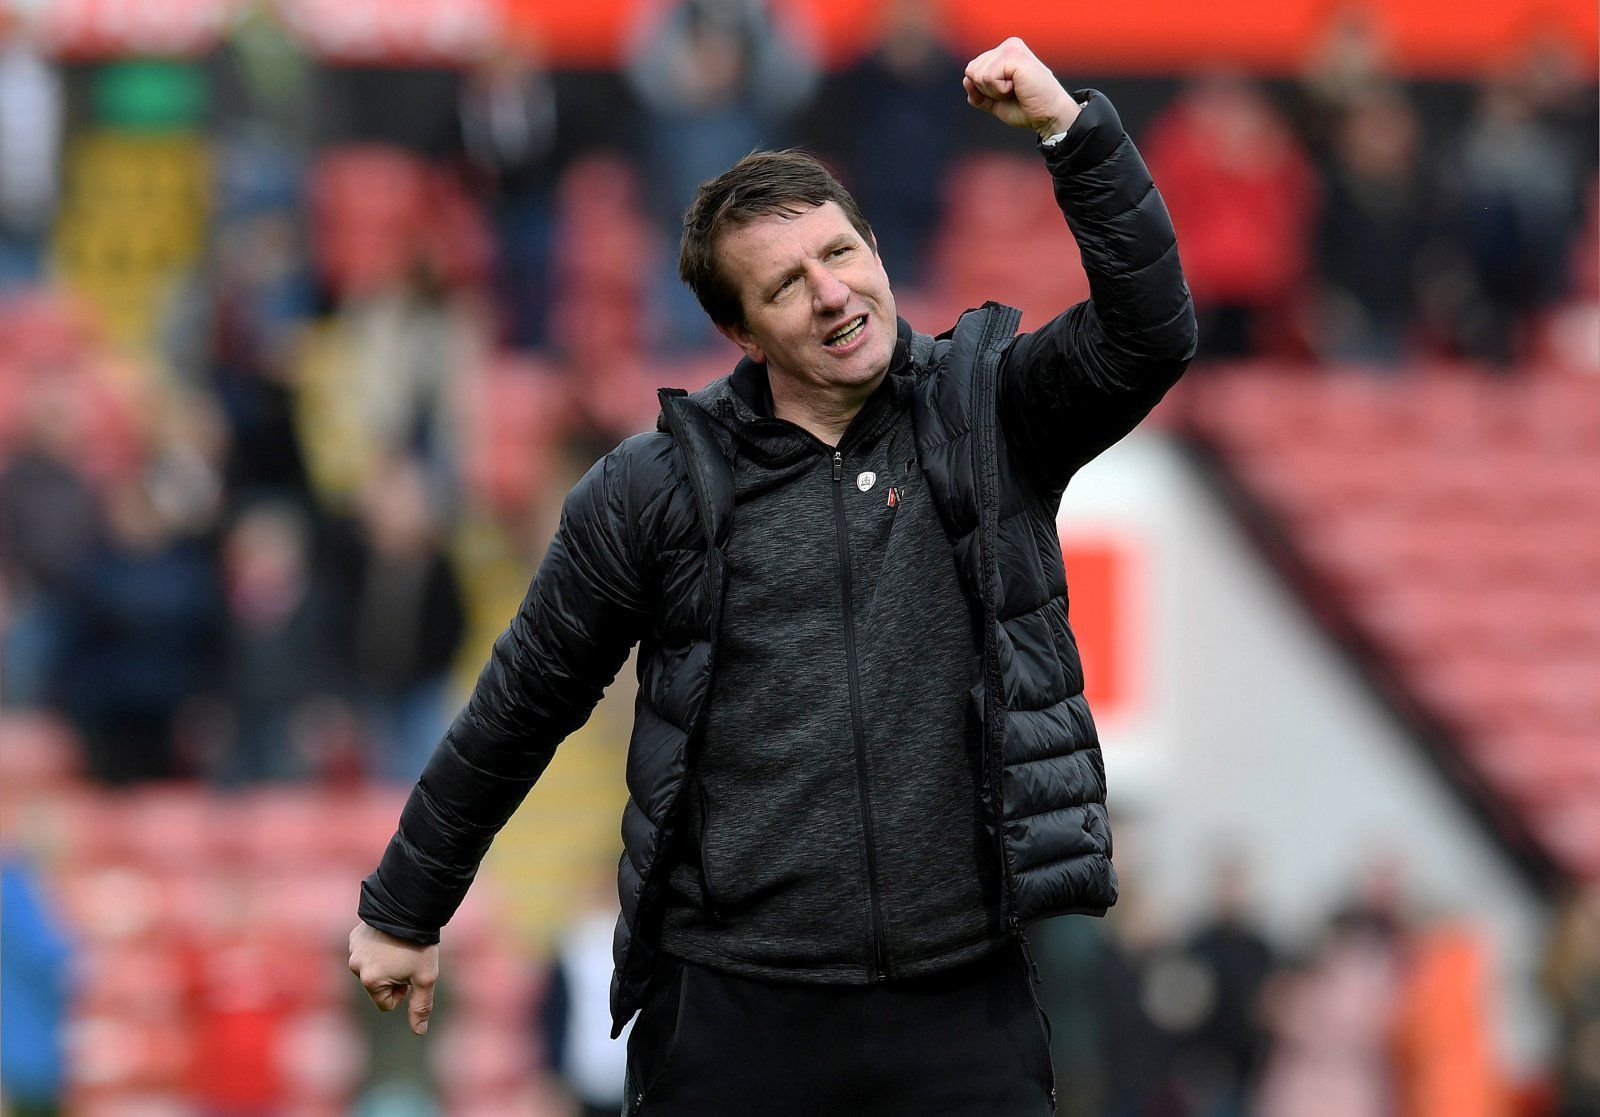 Barnsley: Club's promotion hopes dependent on huge clash against Fleetwood